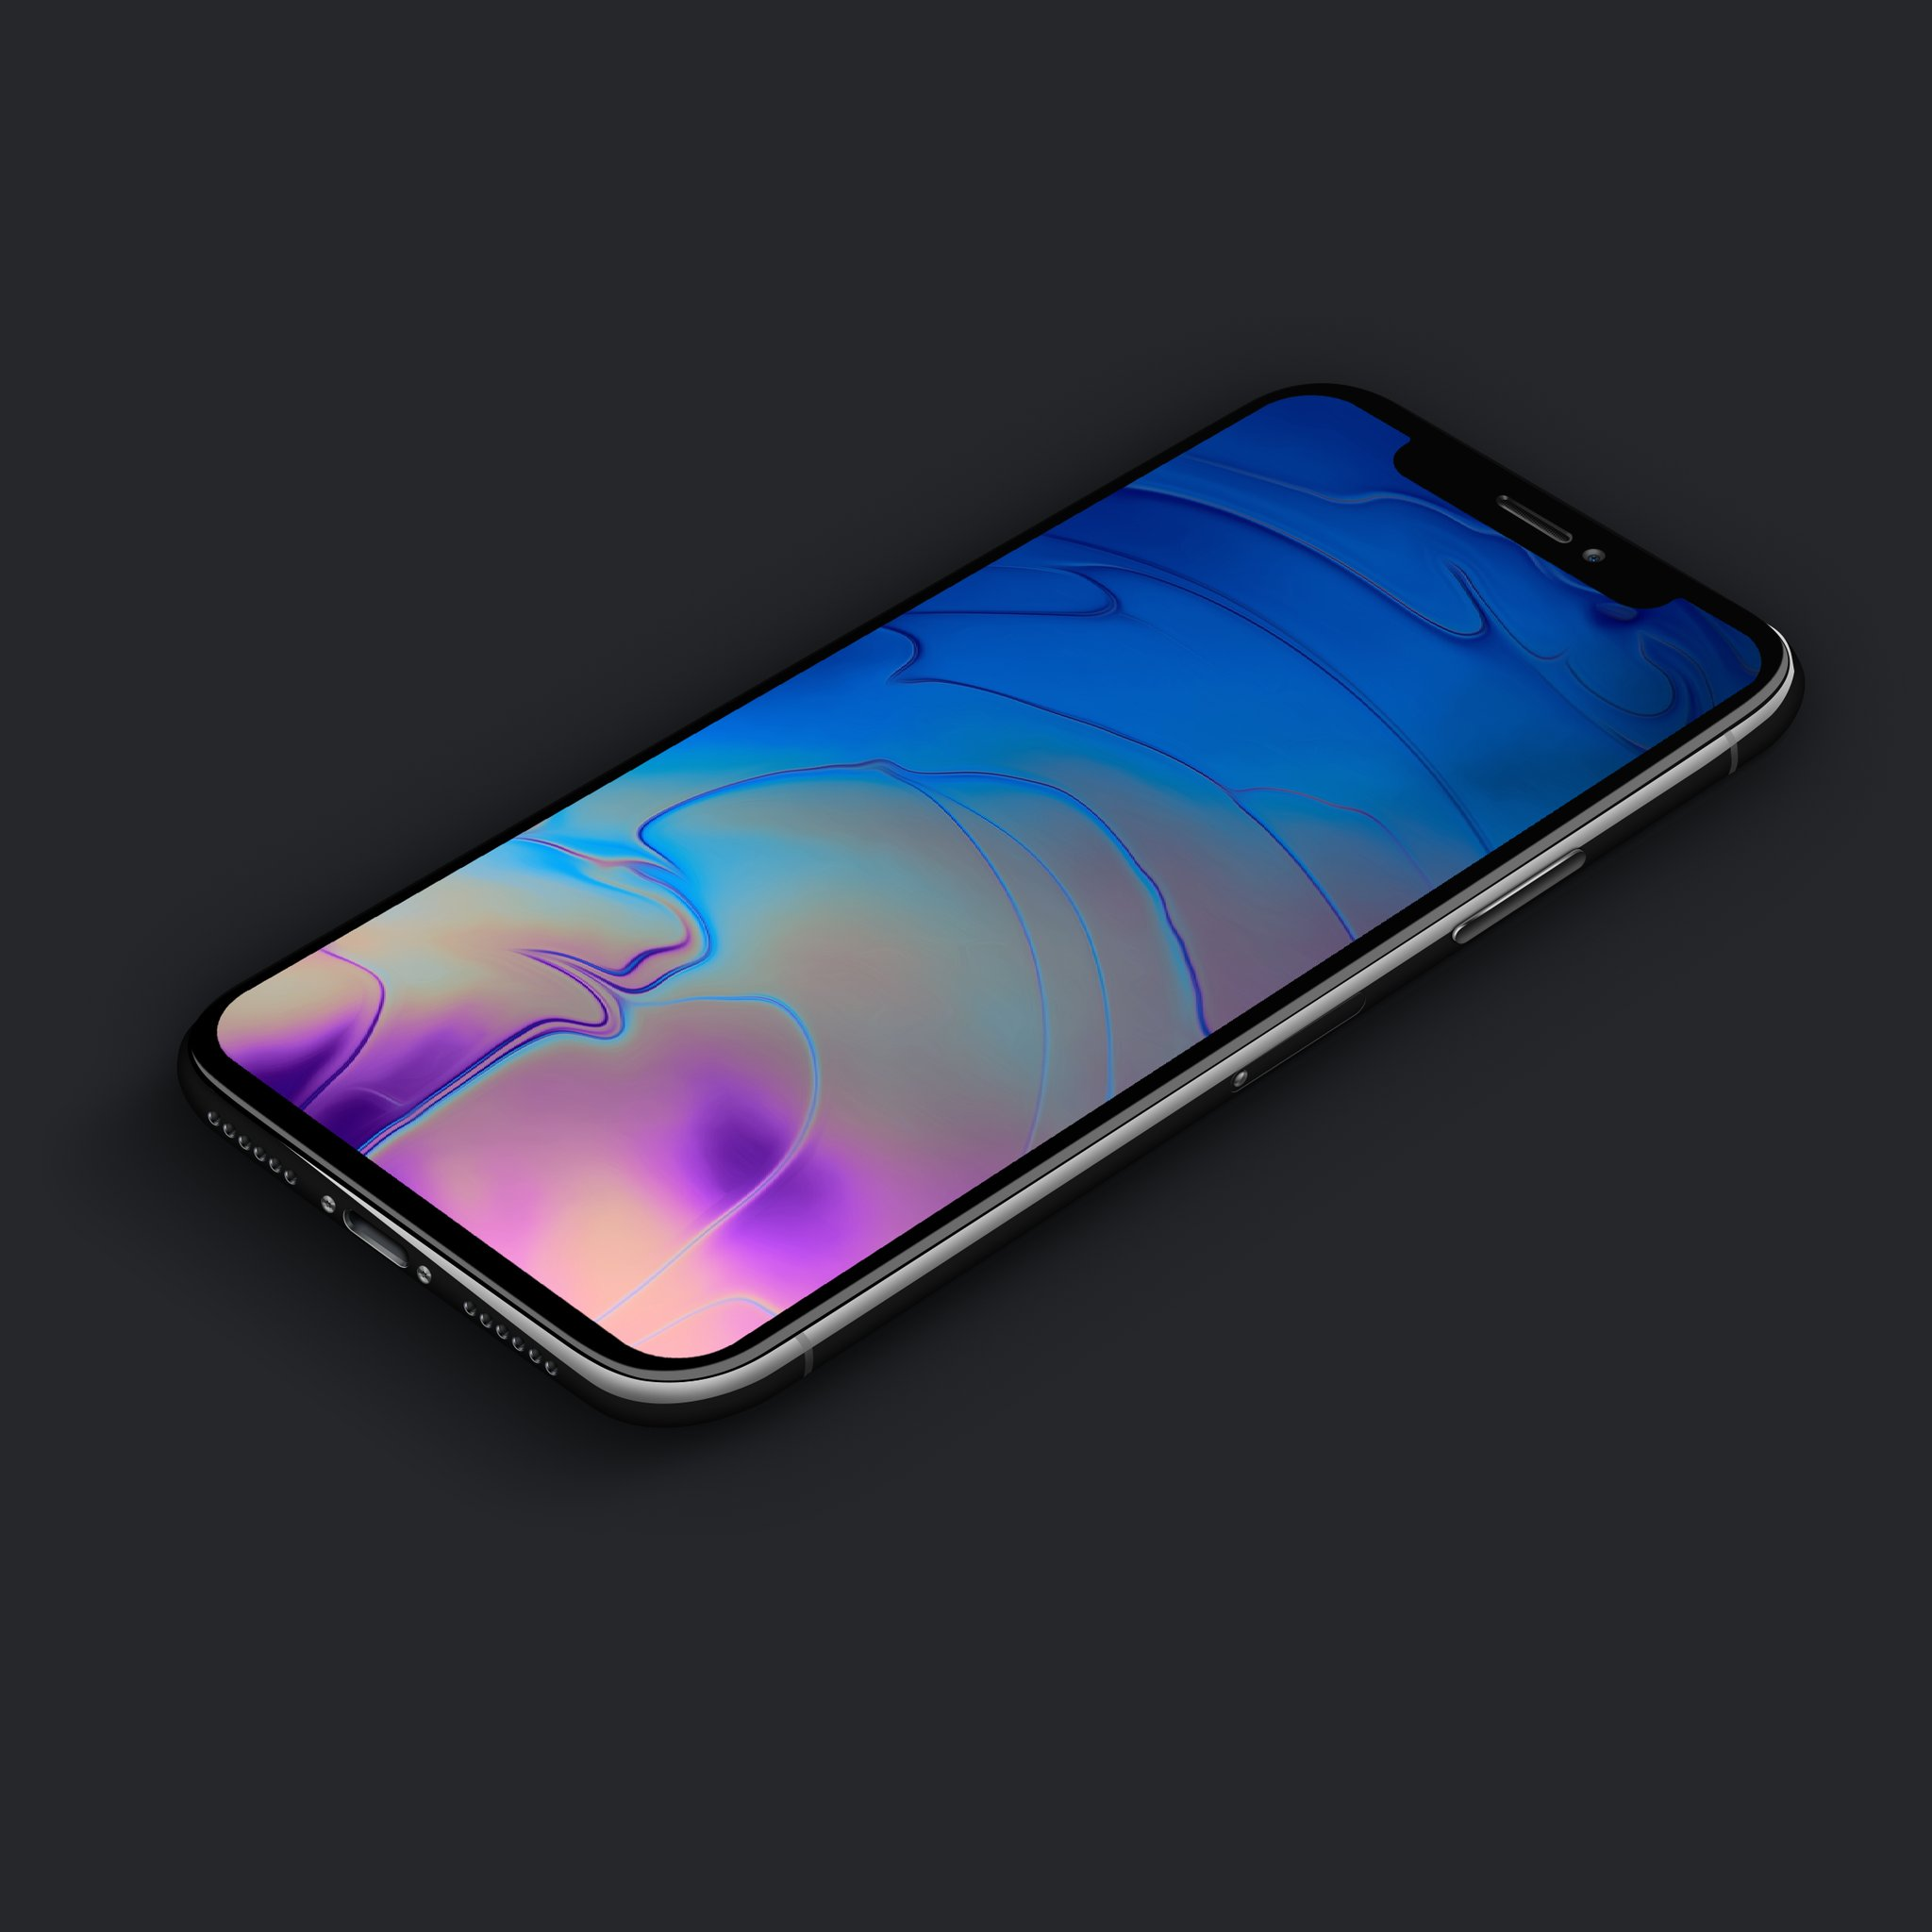 Apple Wallpaper Iphone 7 New Macbook Pro Inspired Wallpapers For Iphone